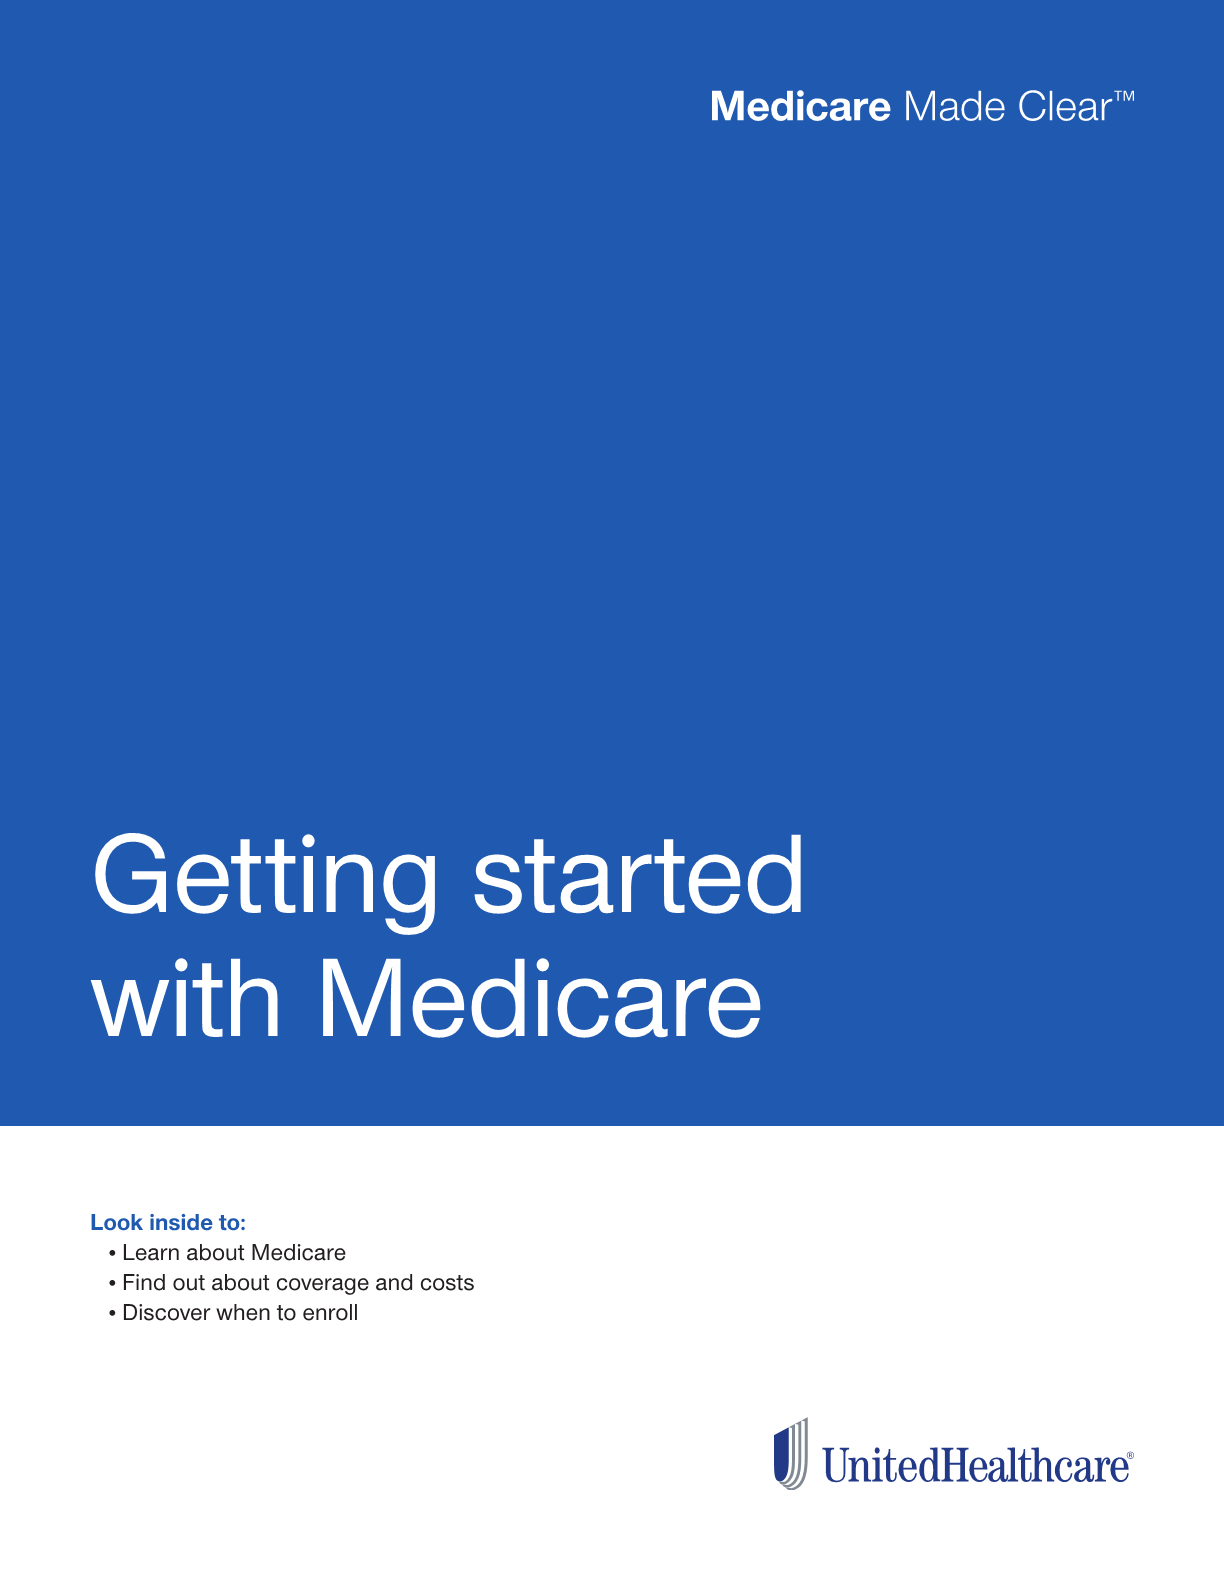 Getting started withMedicare Guide